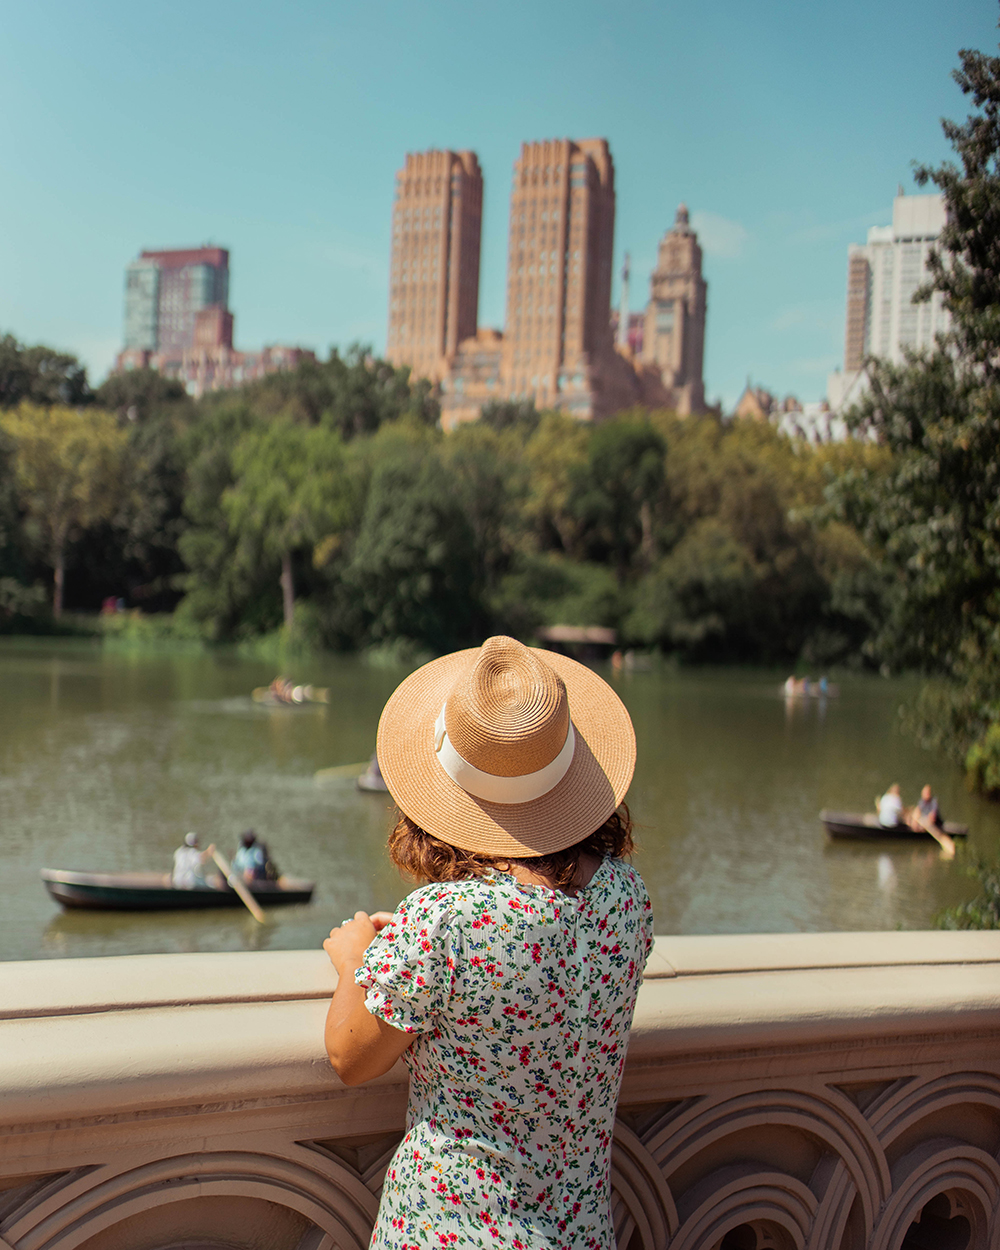 Postcards from Hawaii, NYC, New York City, Itinerary, Loeb Boathouse, Central Park, Bow Bridge